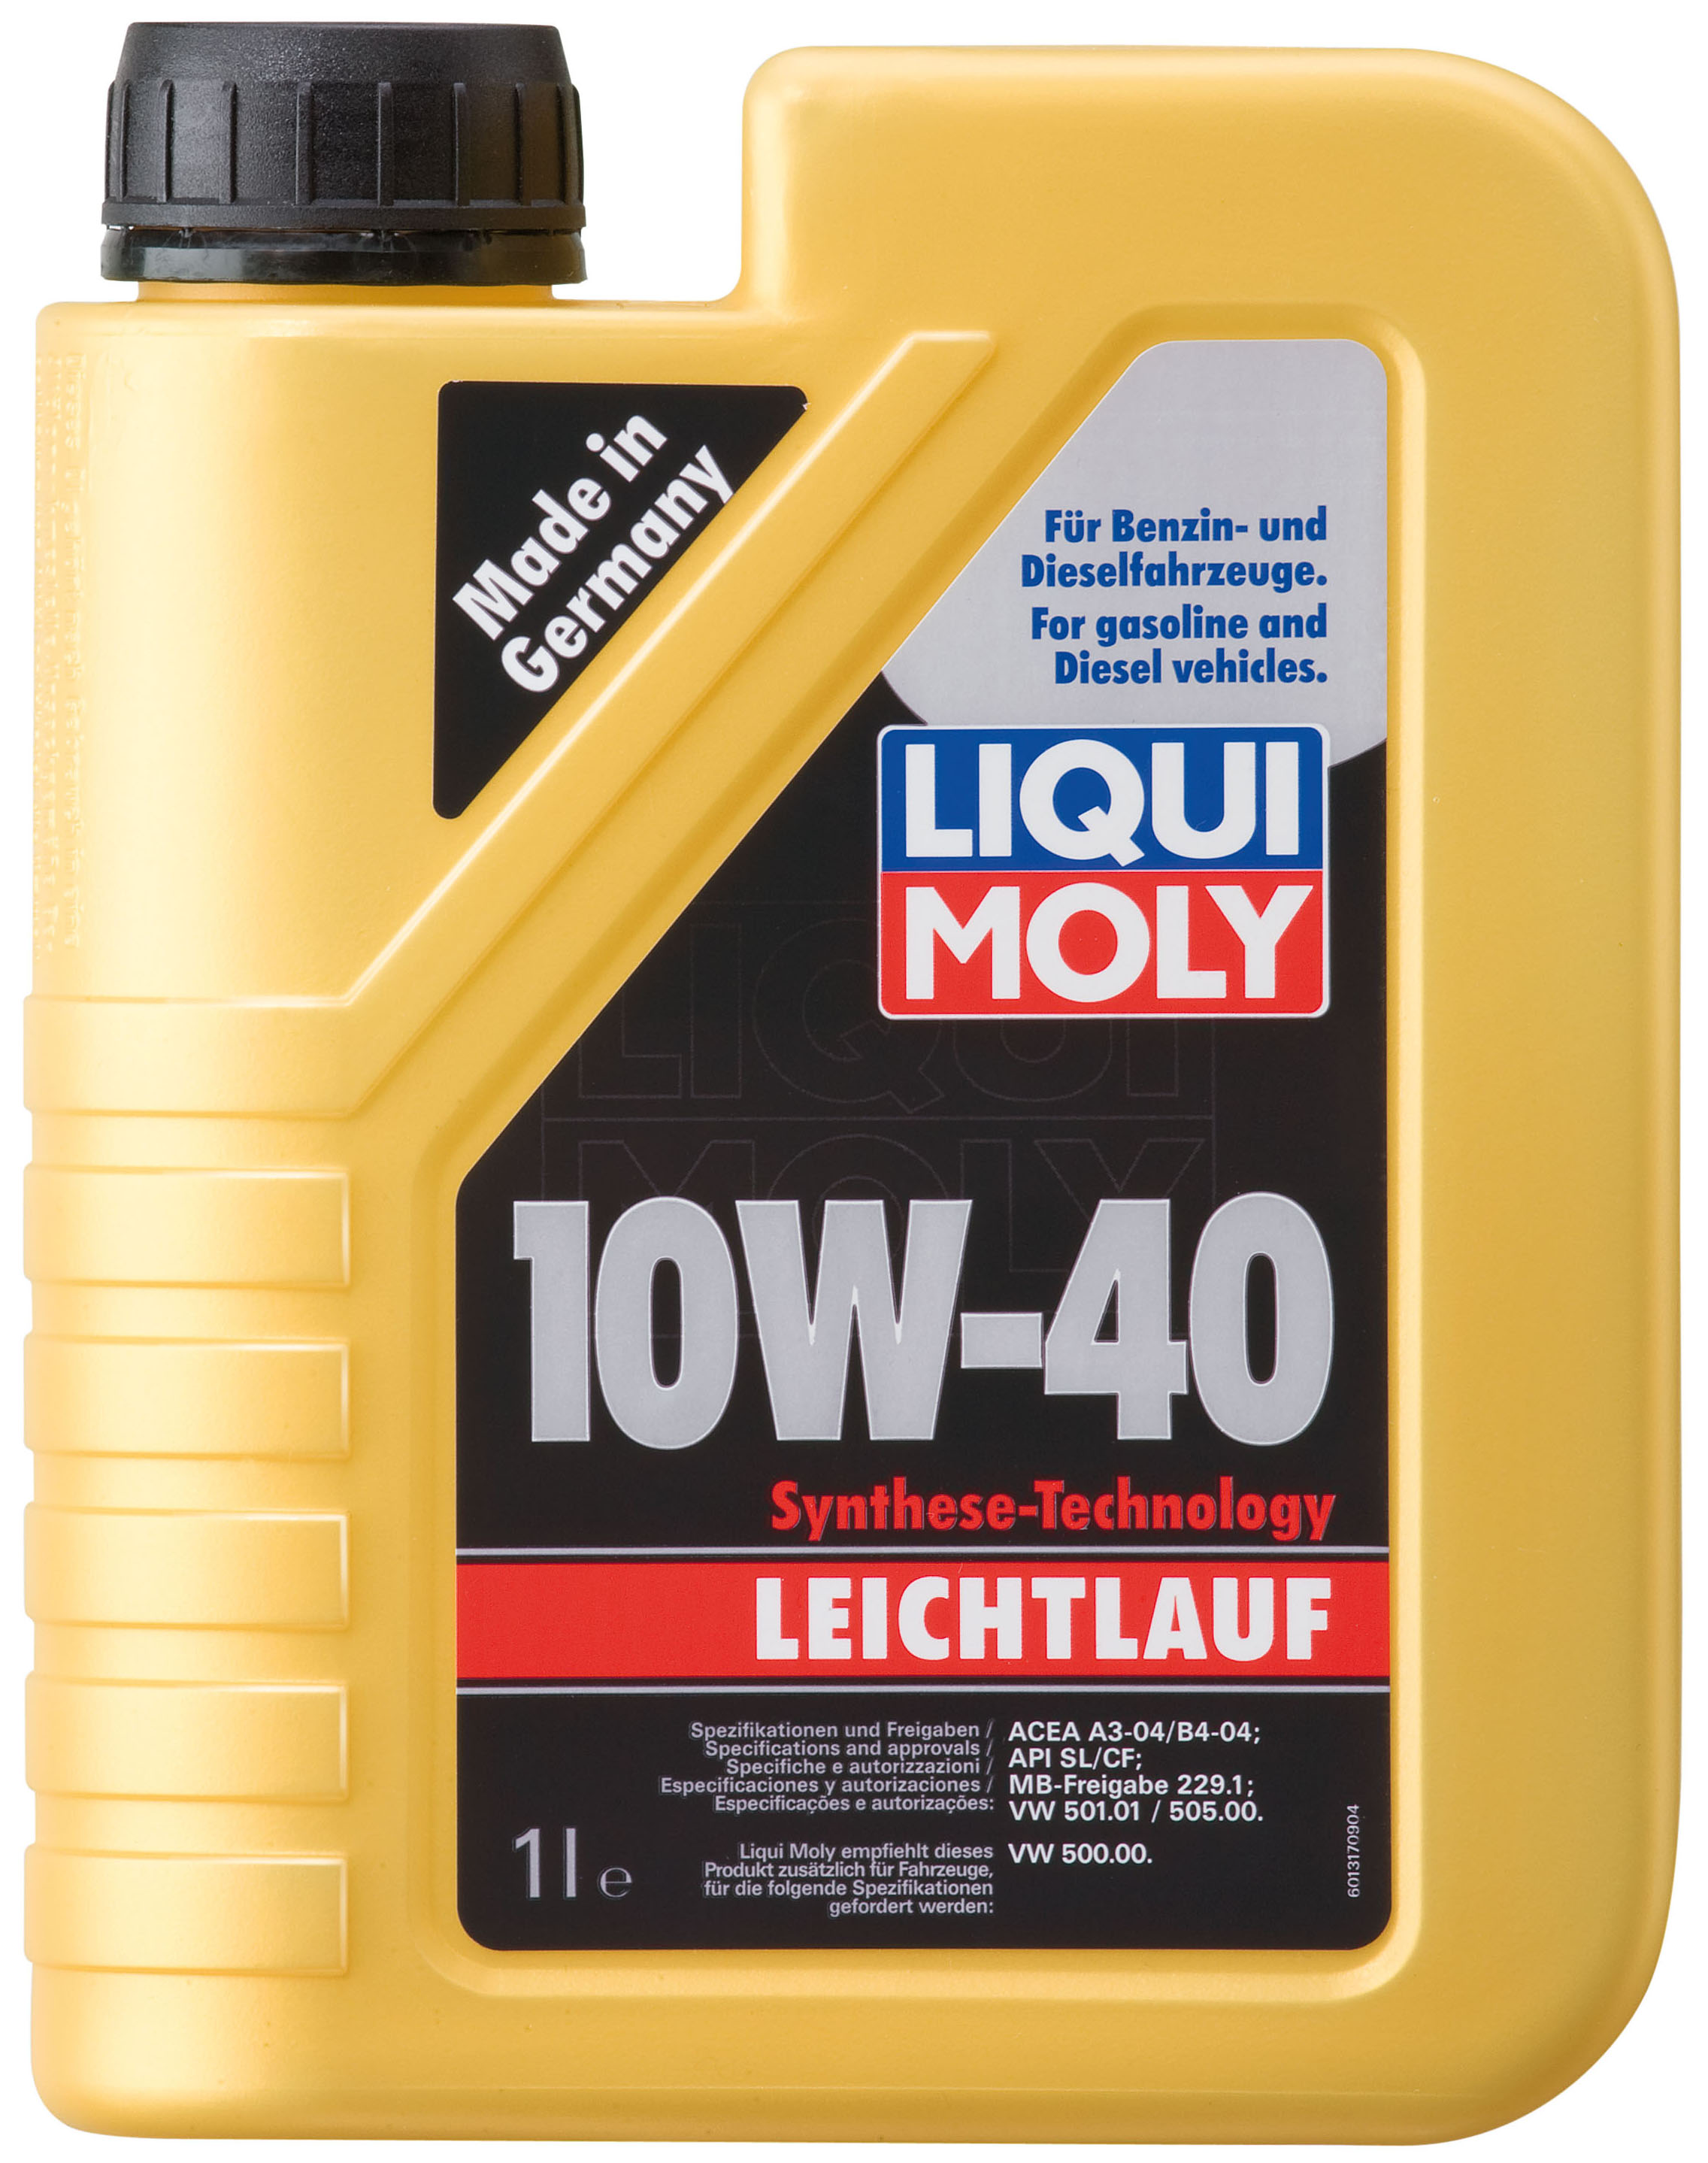 10w 40 leichtlauf liqui moly 1 liter. Black Bedroom Furniture Sets. Home Design Ideas